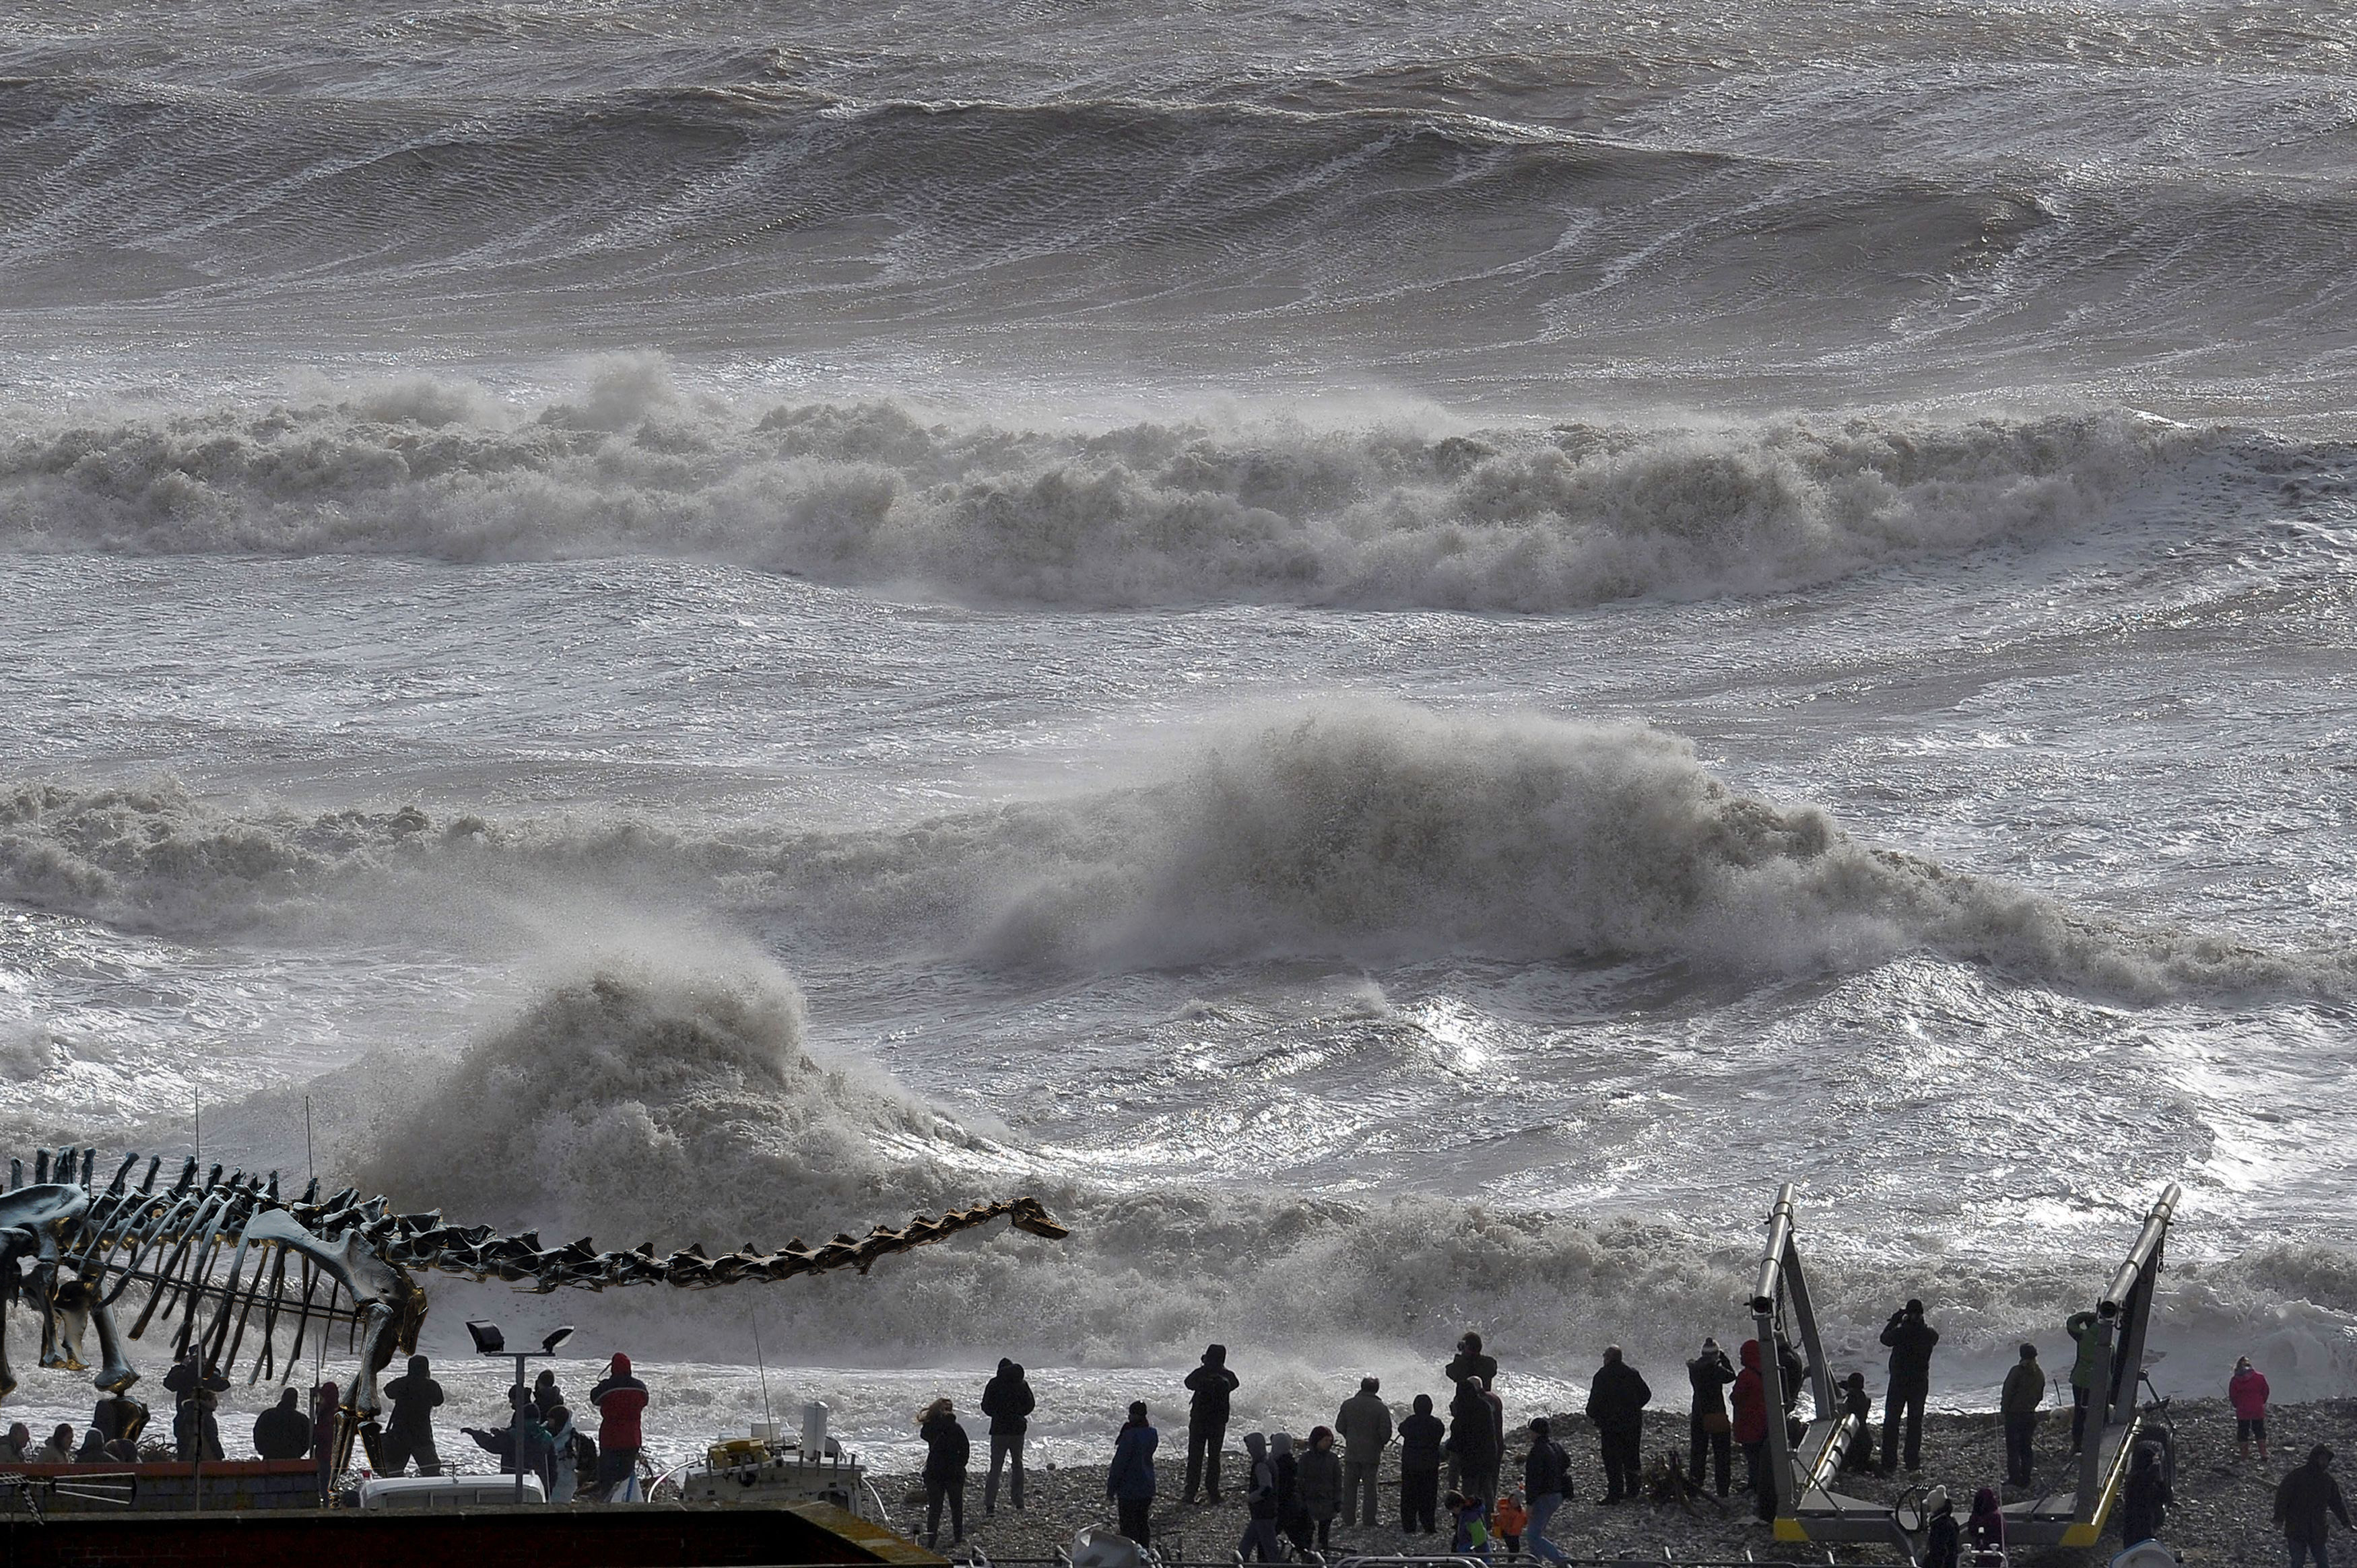 Waves break over the Cobb in Lyme Regis, Dorset as the south coast is battered by stormy weather.